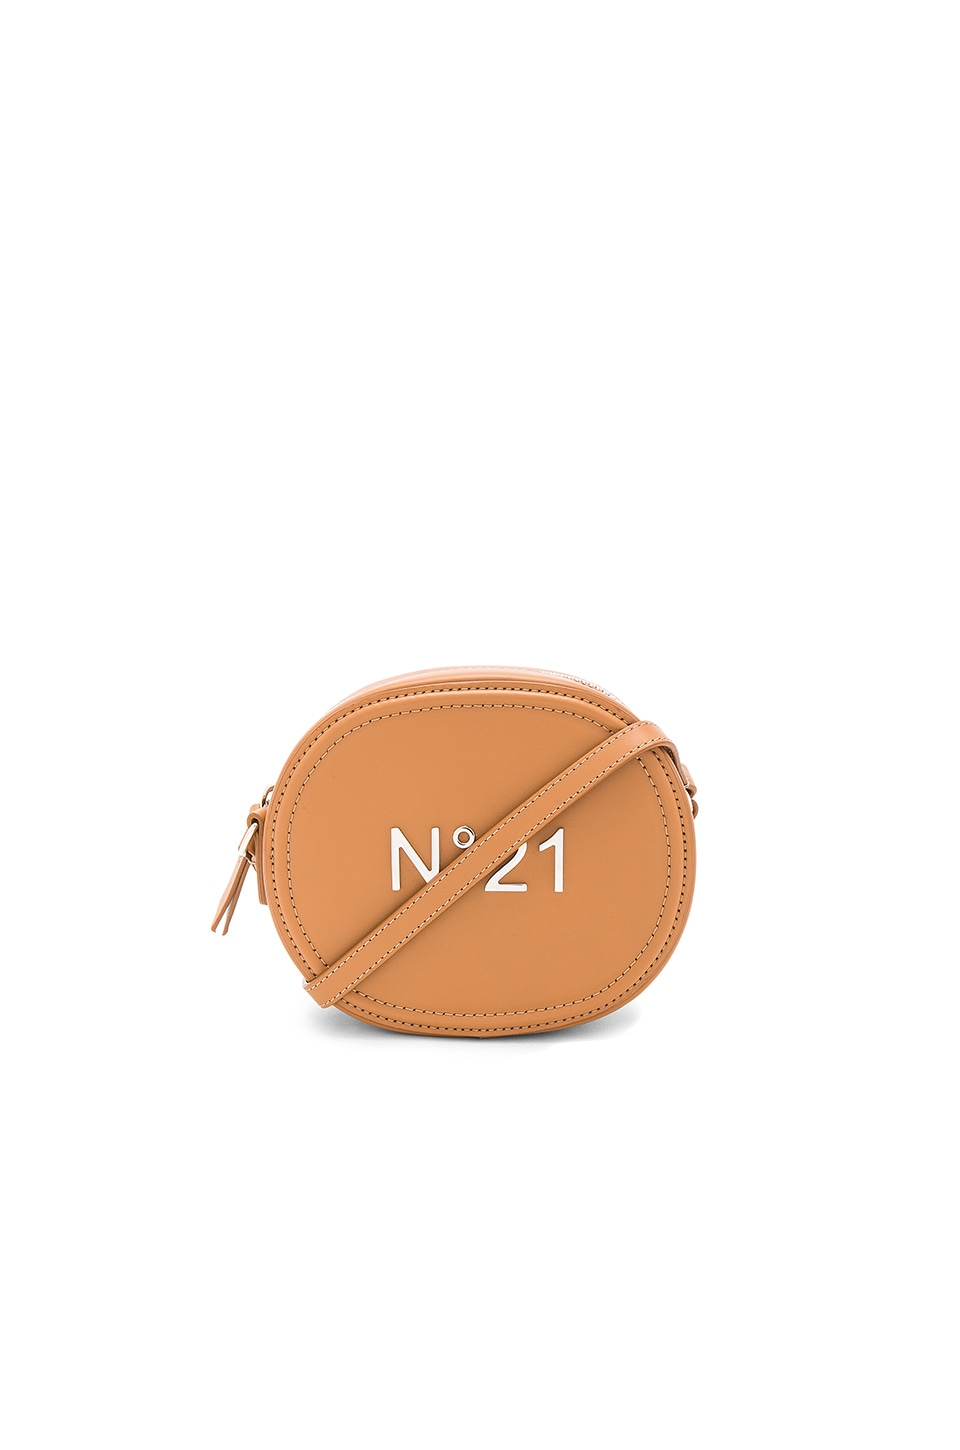 No. 21 Camera Bag in Camel